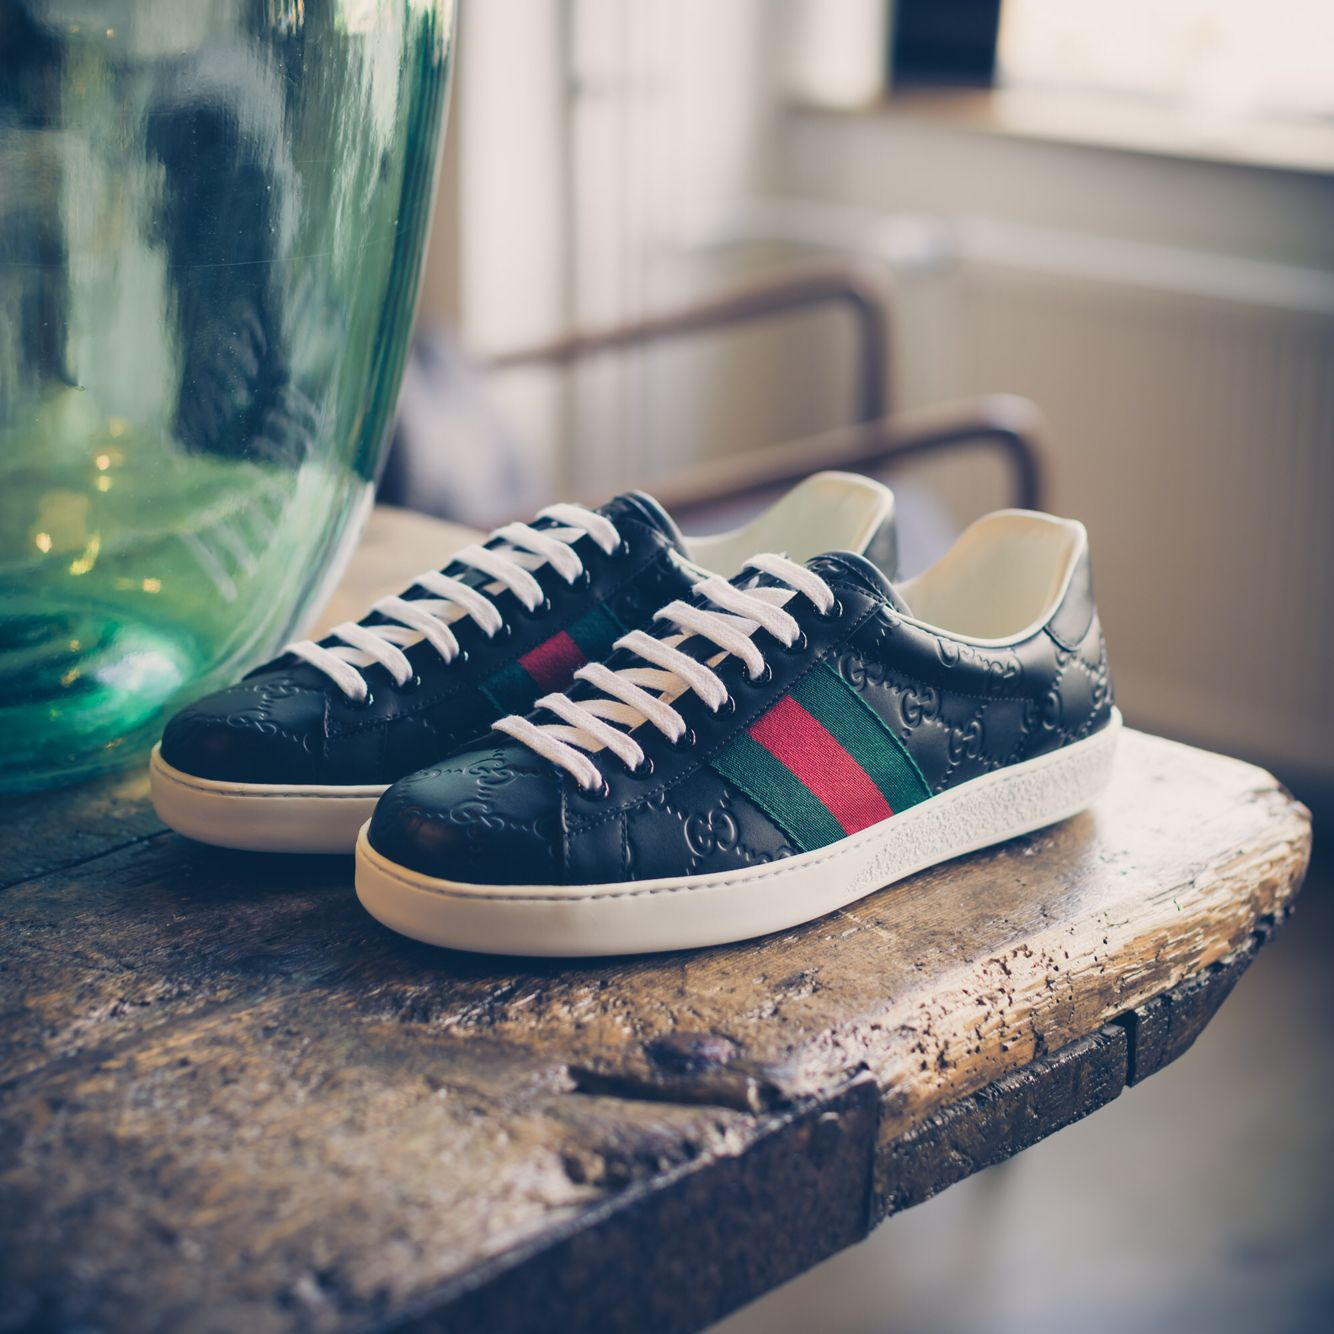 5f422dec50d GUCCI | NEW ARRIVALS | DERODELOPER.COM The Gucci ace signature low top  sneakers for the fall / winter 2016 collection. Available Online & In Store  FOR MORE ...